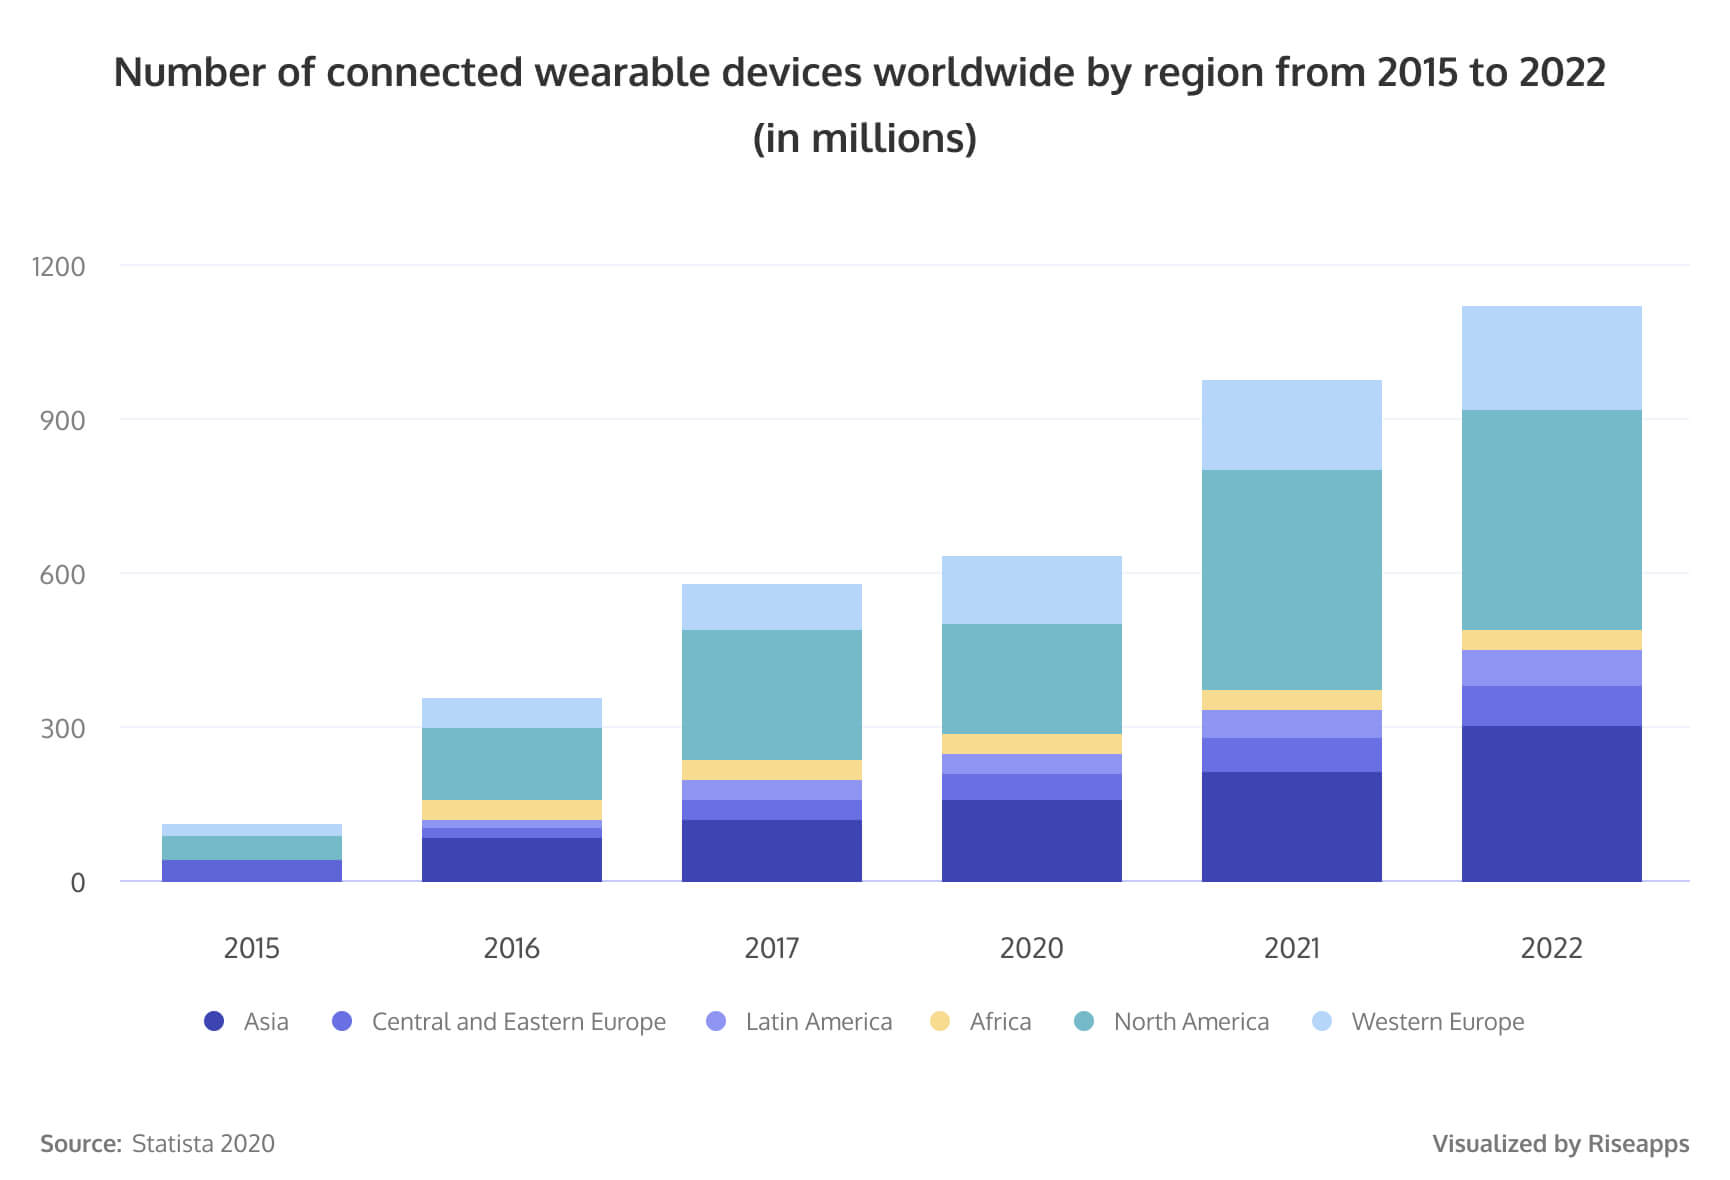 Number of connected wearable devices worldwide by region from 2015 to 2022 (in millions)